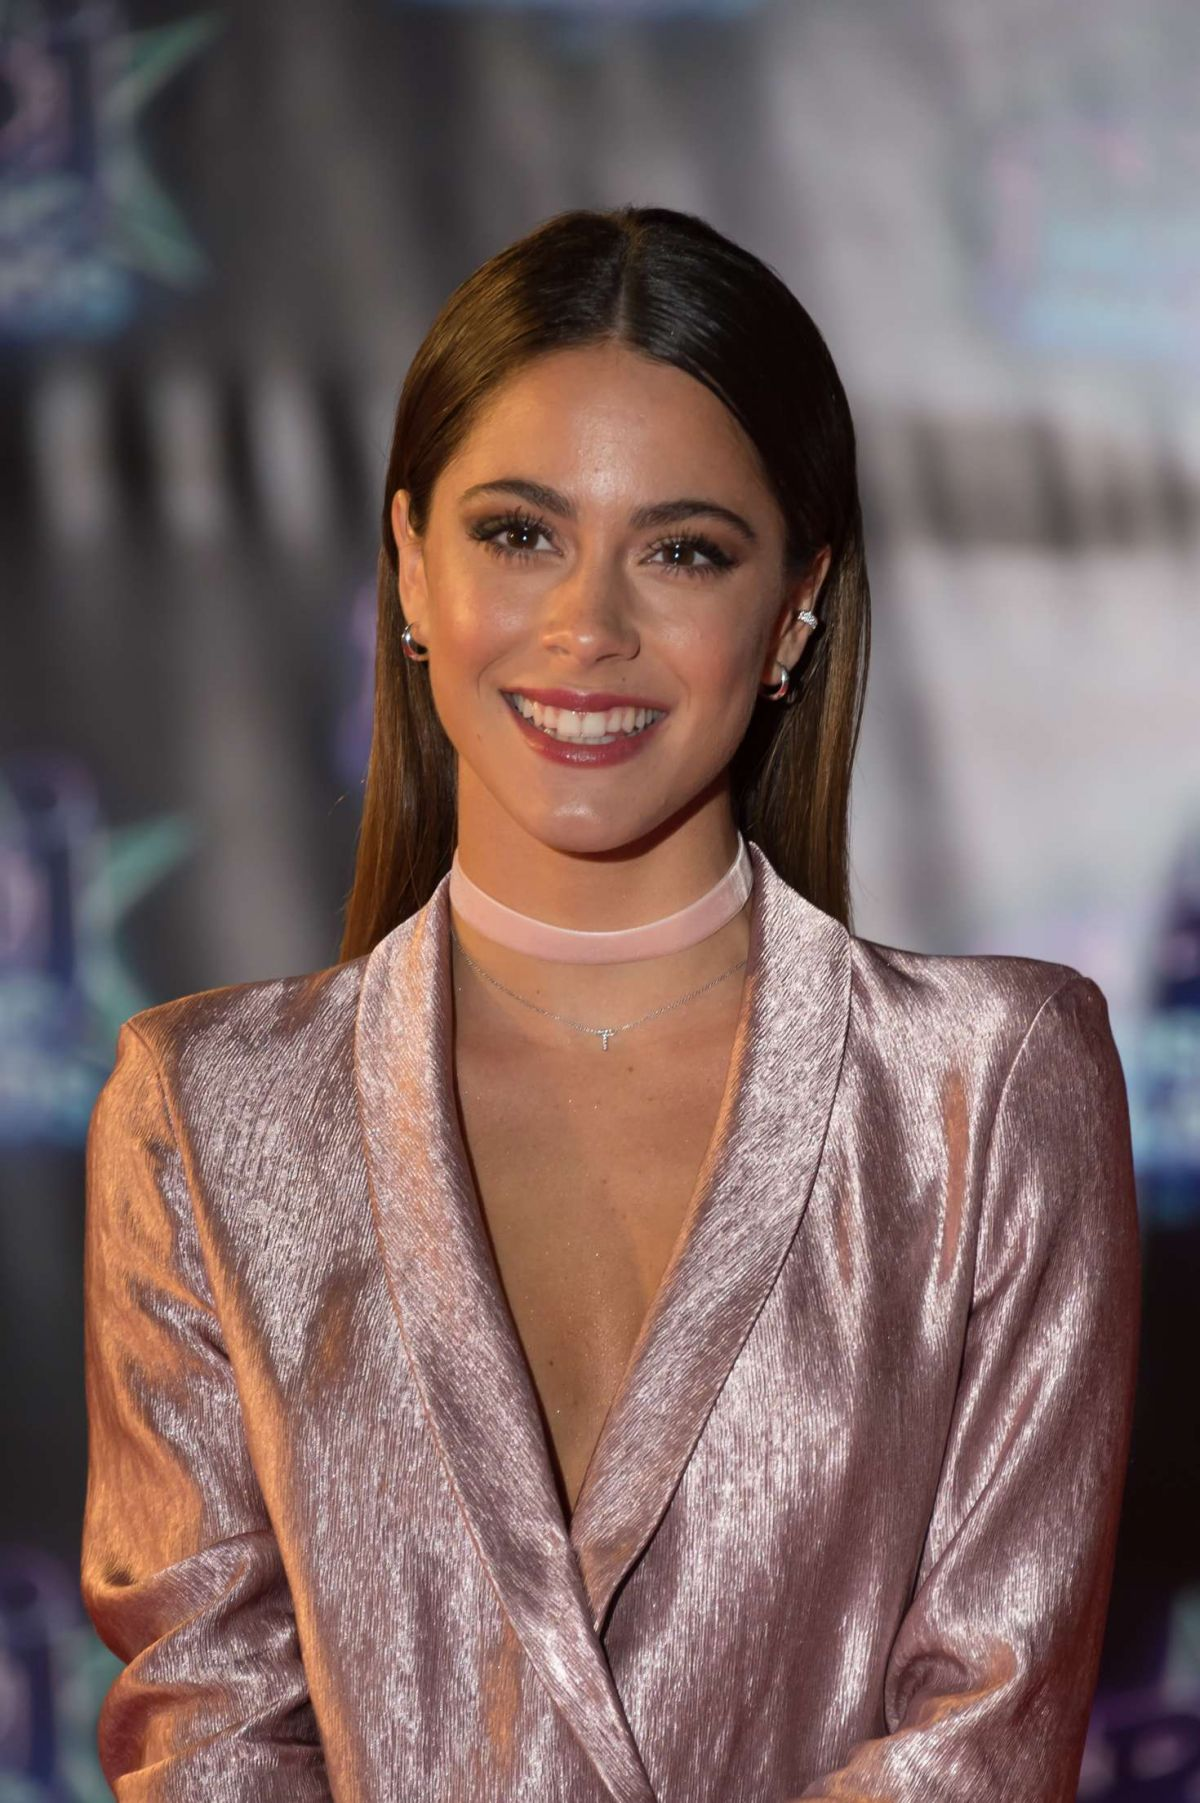 Martina Stoessel At Nrj Music Awards 2016 In Cannes Celebzz